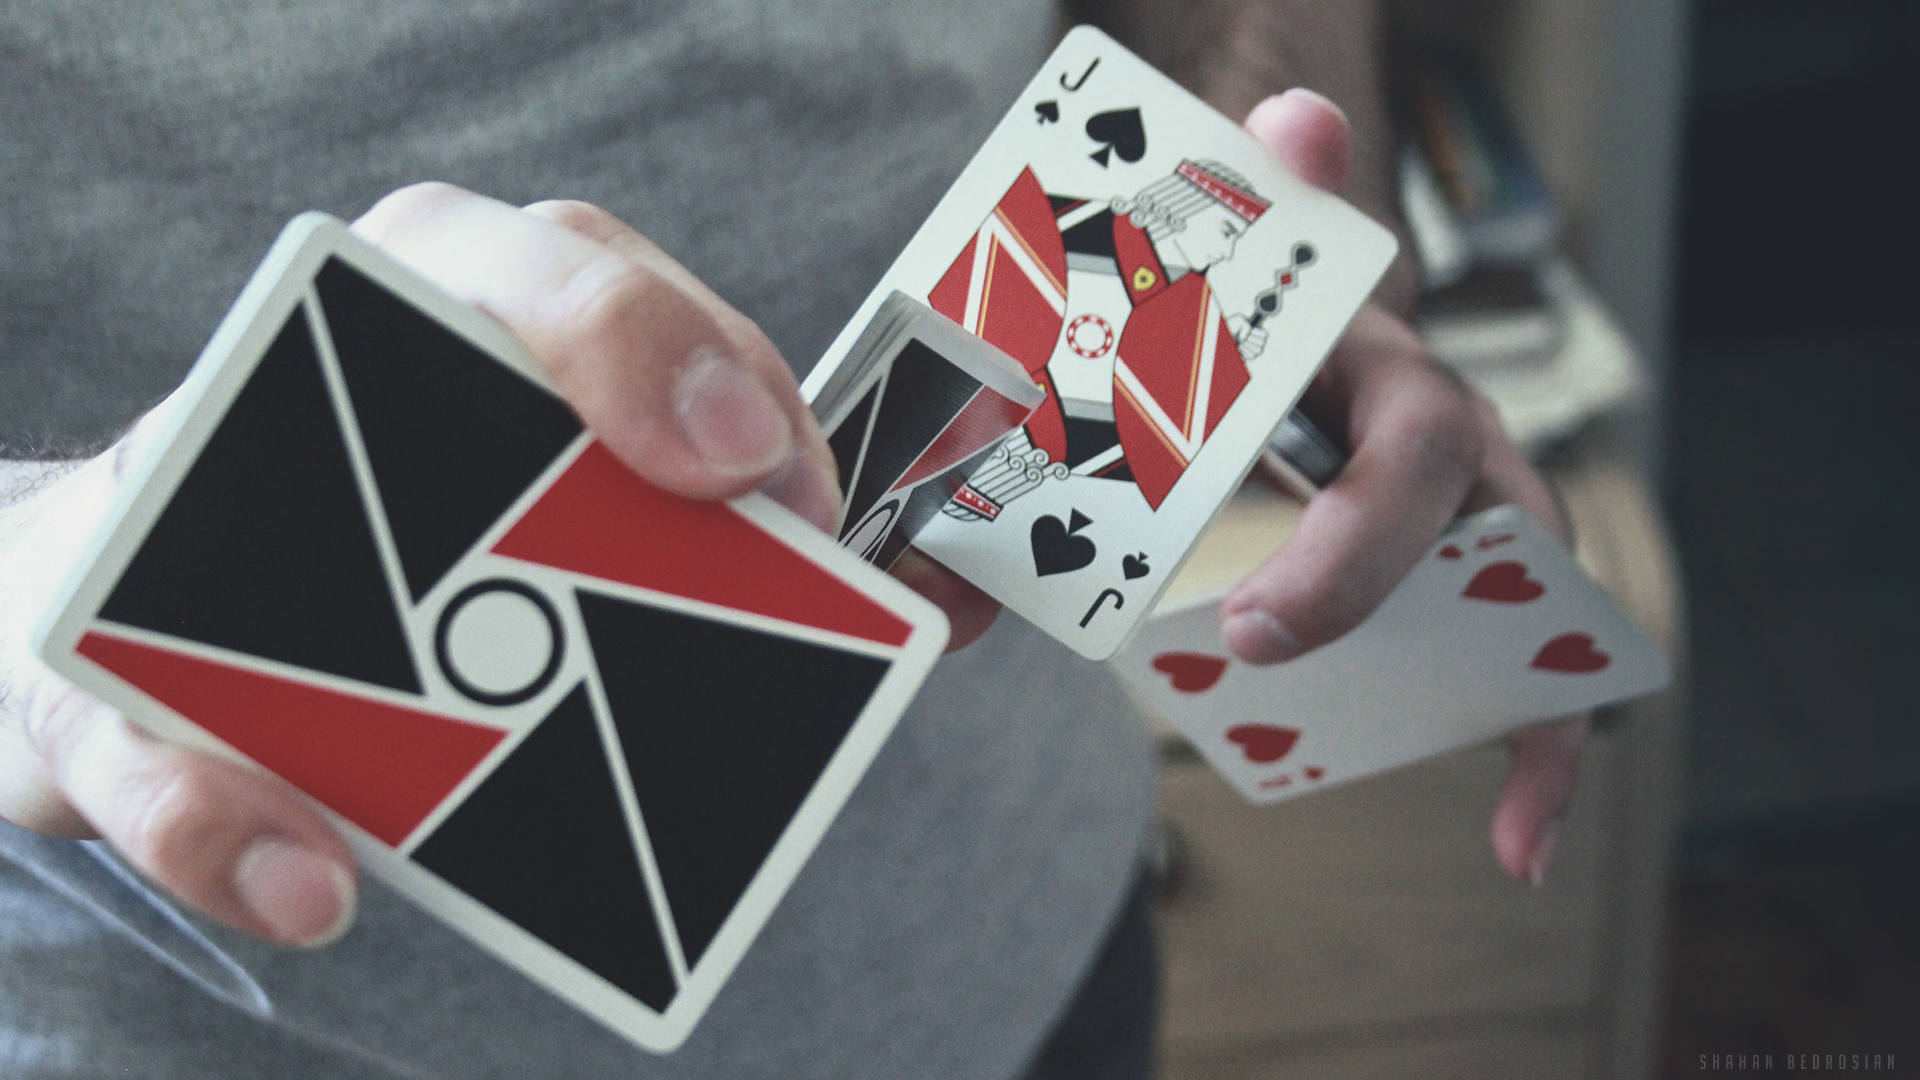 1920x1080 Cardistry Desktop PC And Mac Wallpaper